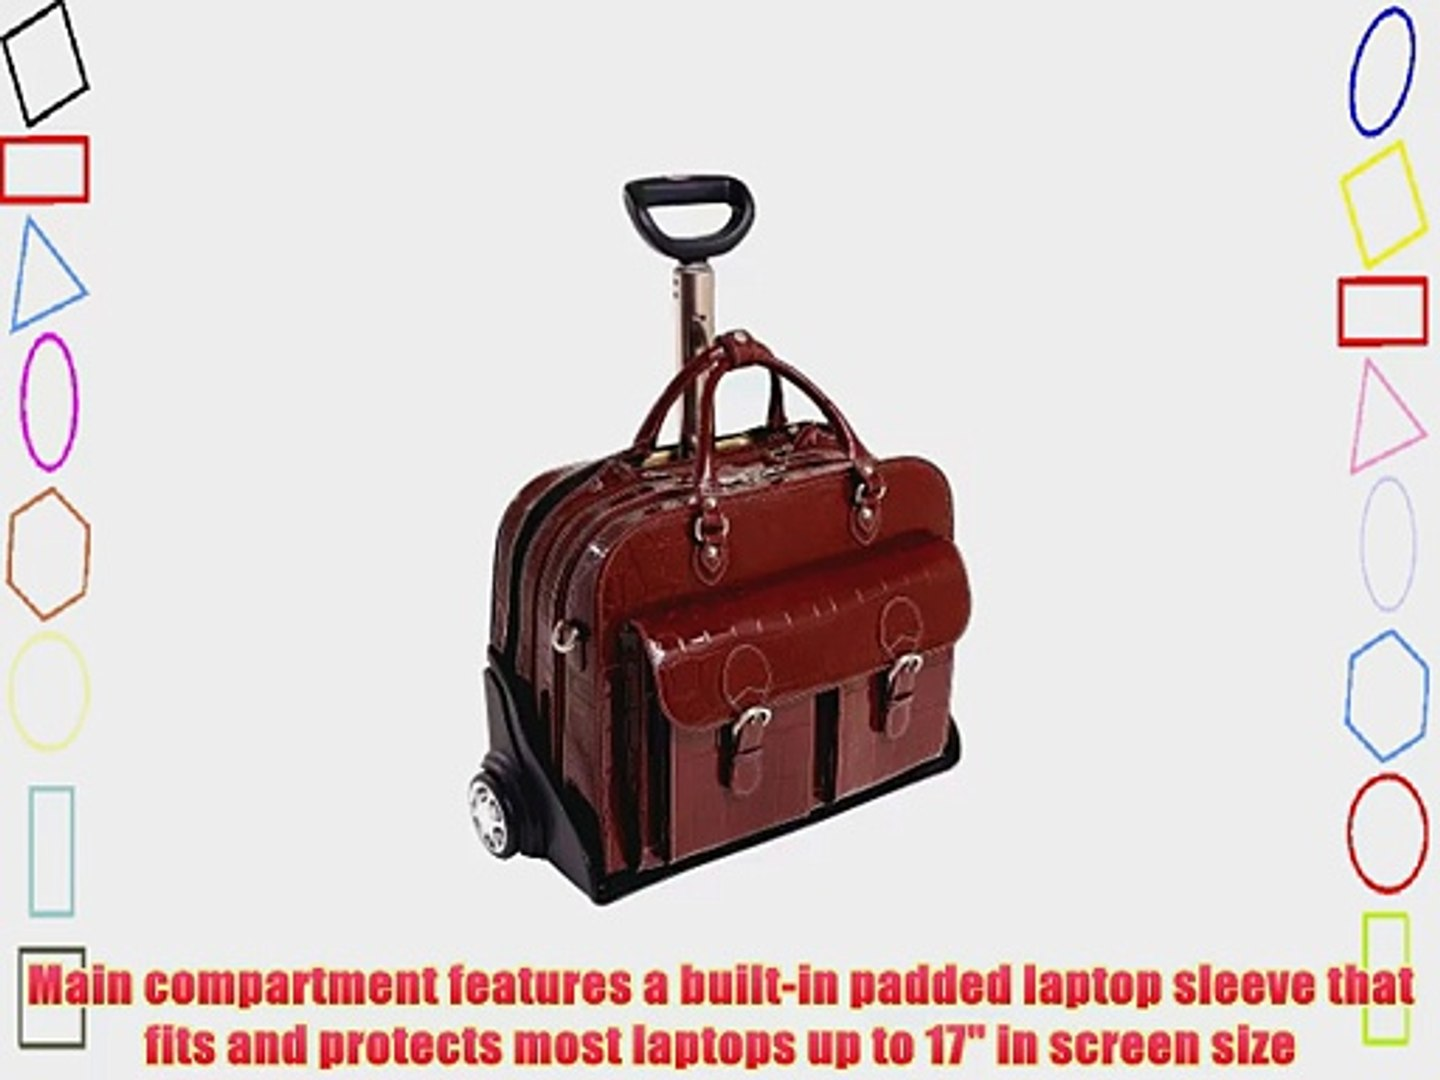 46004 McKlein 337095-6560895 Siamod Ceresola Checkpoint 17 Wheeled Laptop Case Detachable-Wheeled Laptop Case Leather 17in Brown CERESOLA Siamod